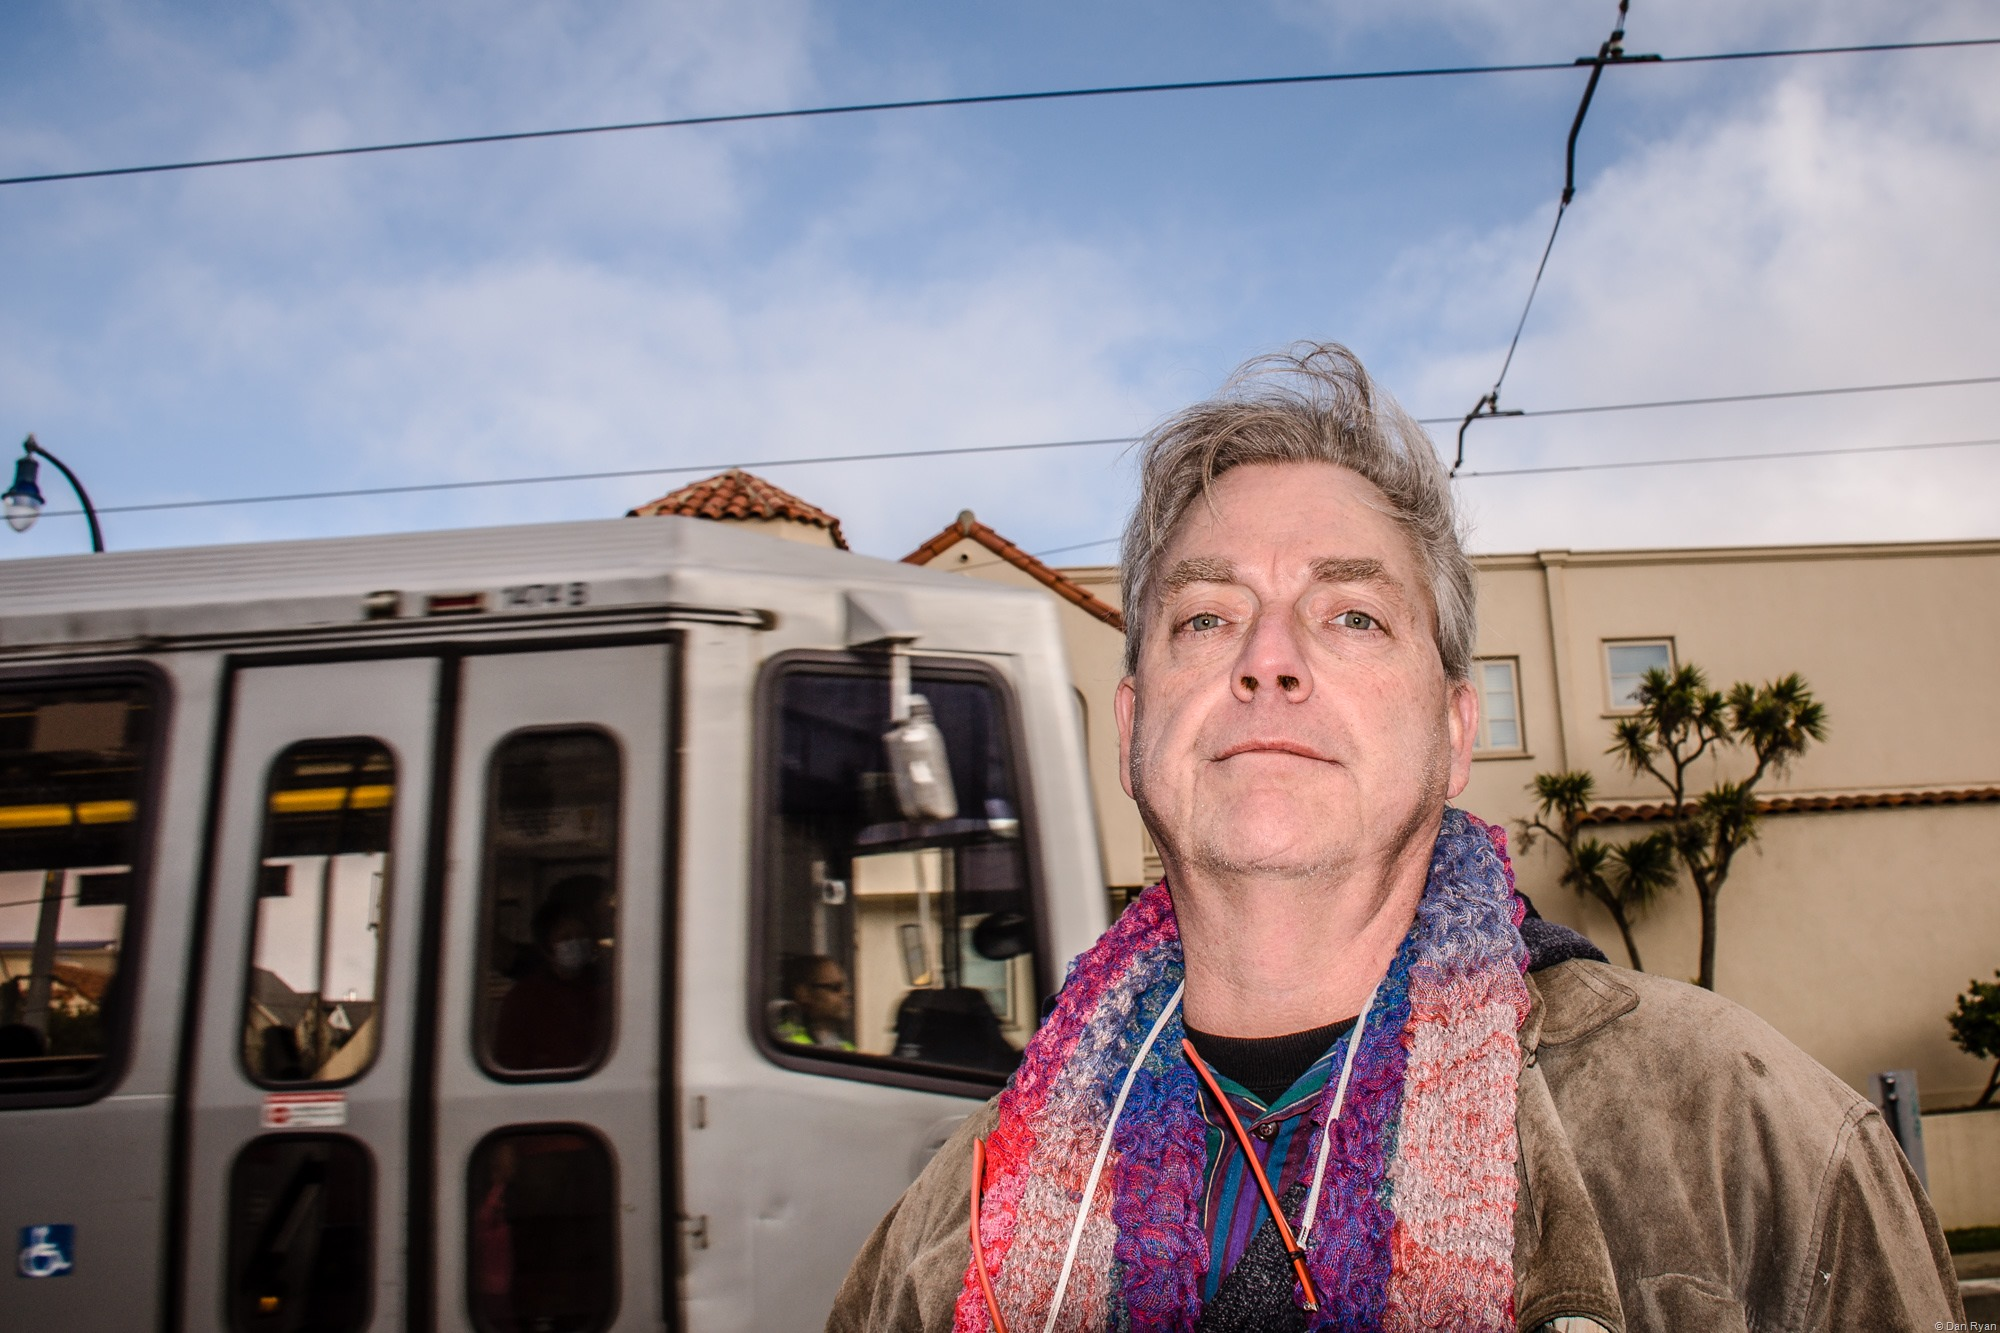 Dan Ryan, Ocean Avenue, San Francisco, January 2018